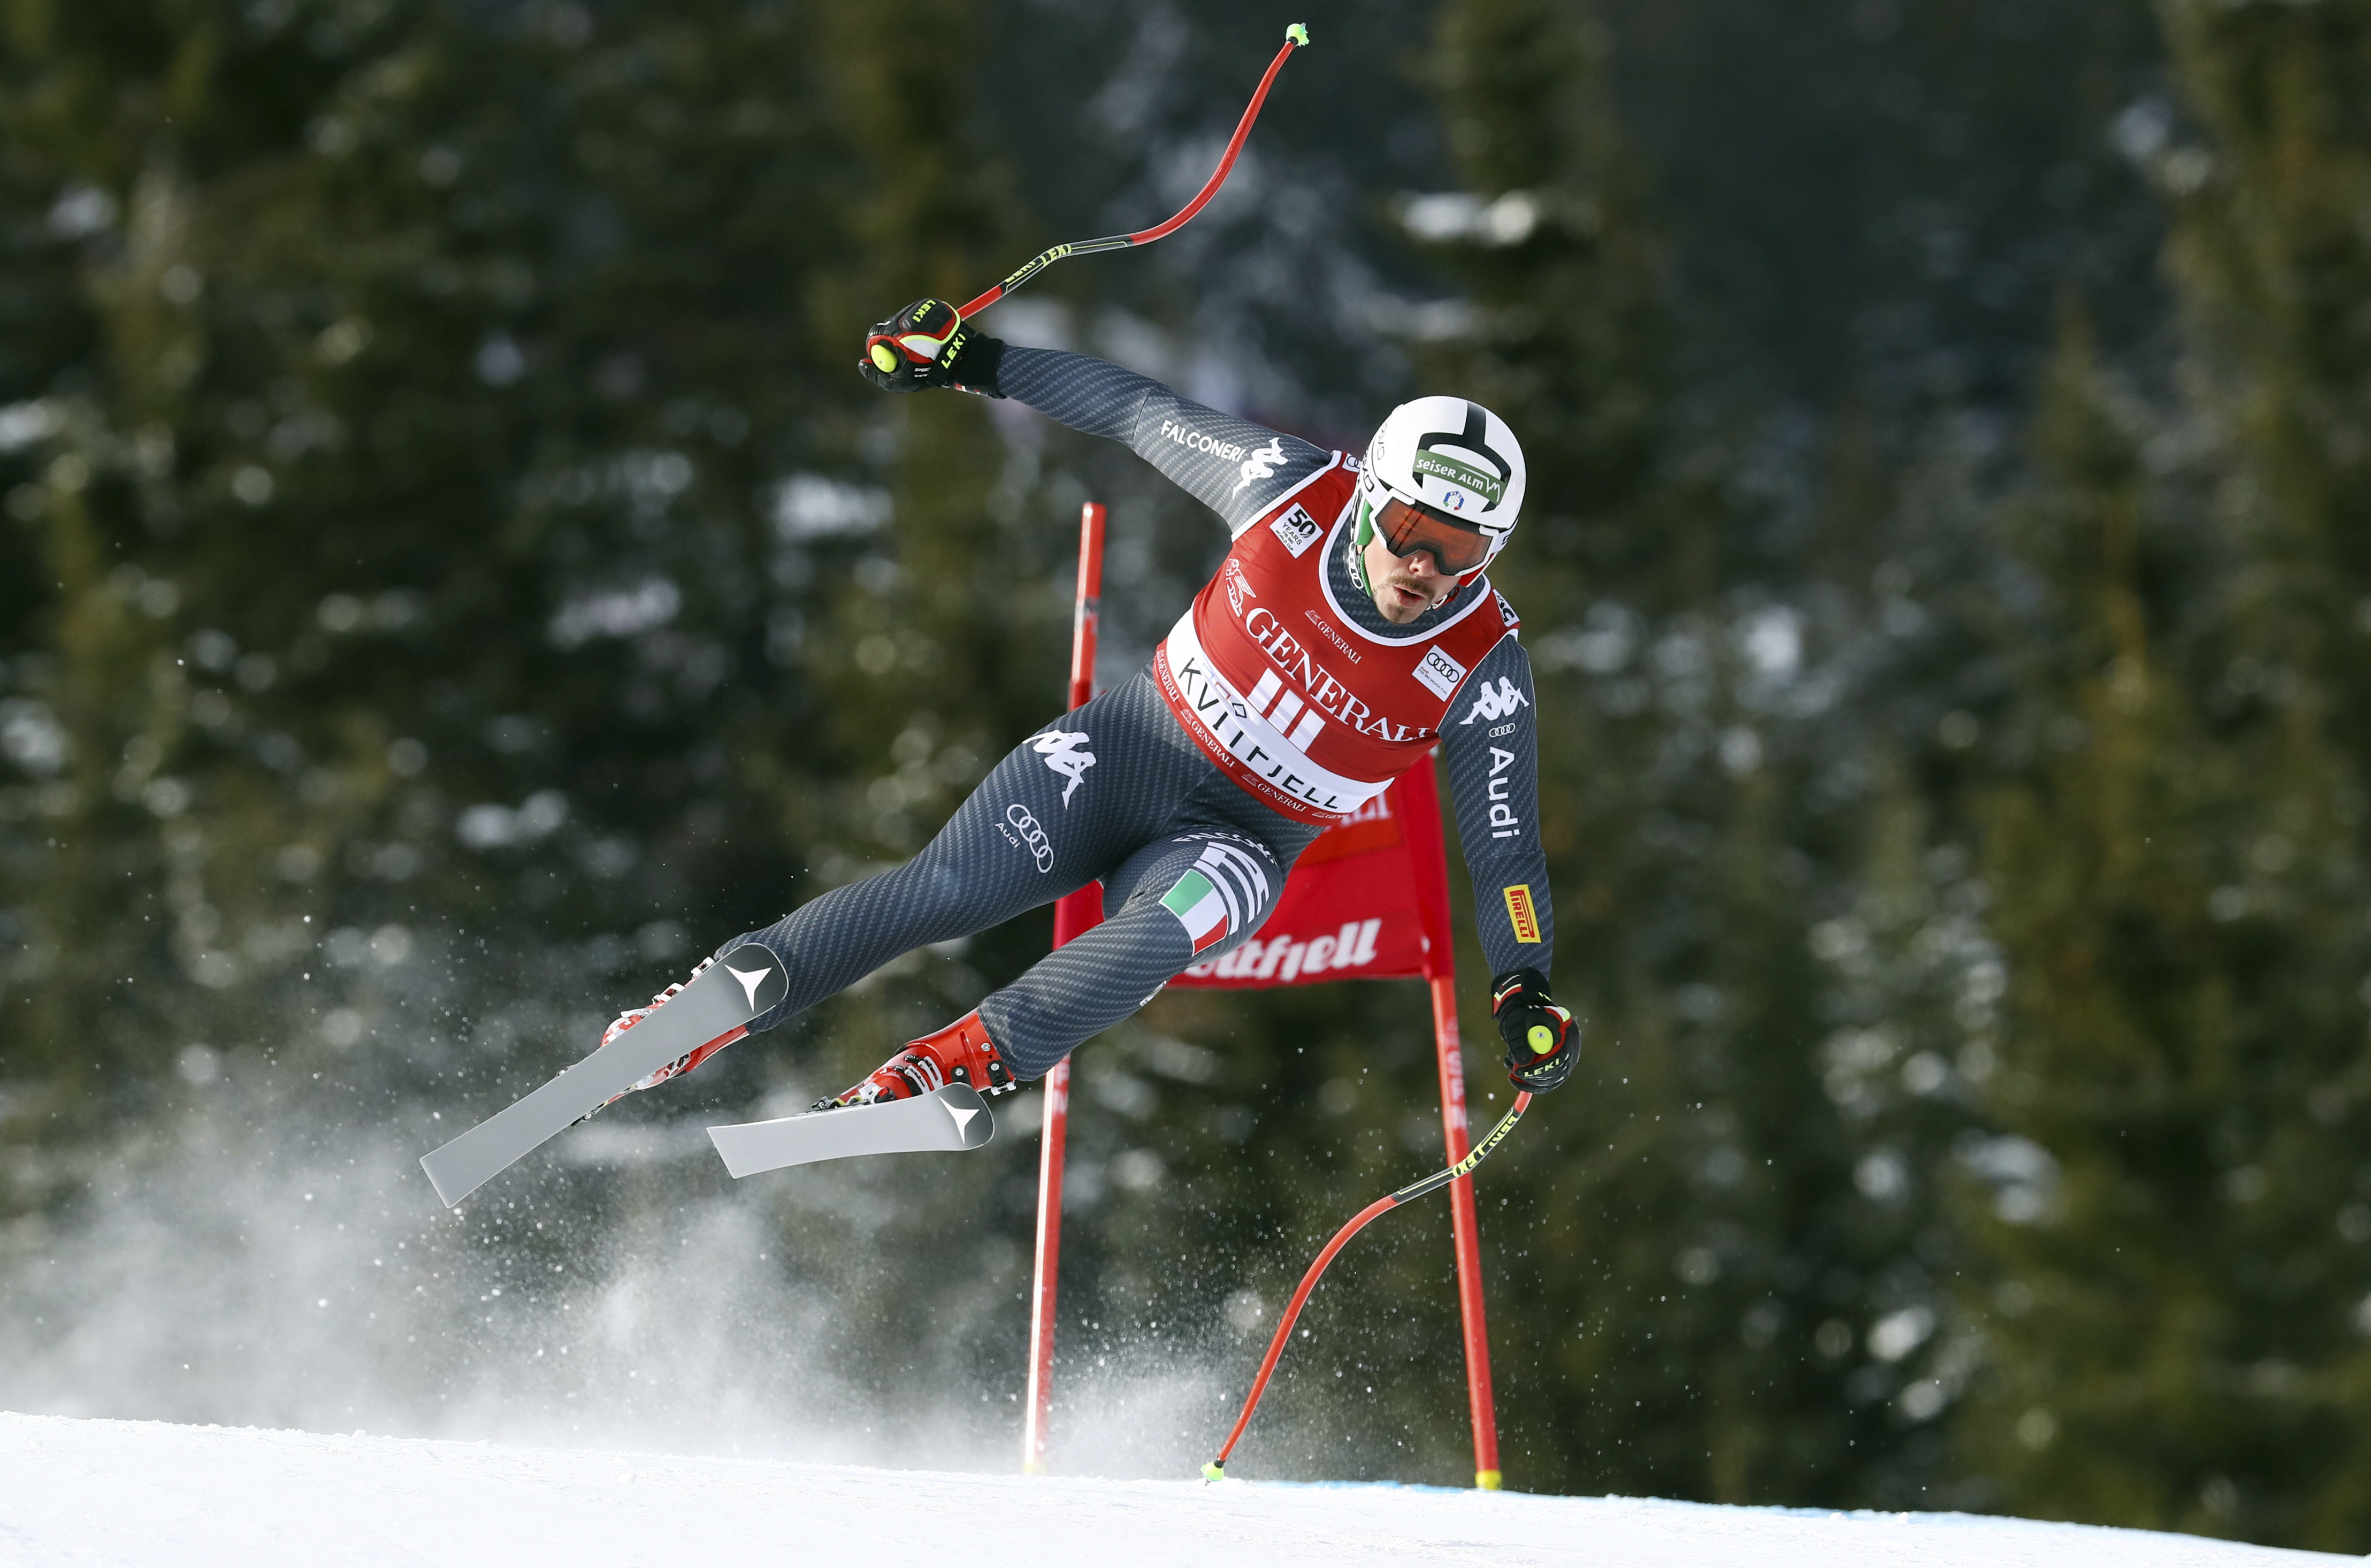 Italy's Peter Fill competes in an alpine ski, men's World Cup Super G, in Kvitfjell, Norway, Sunday, Feb. 26, 2017. (AP Photo/Alessandro Trovati)